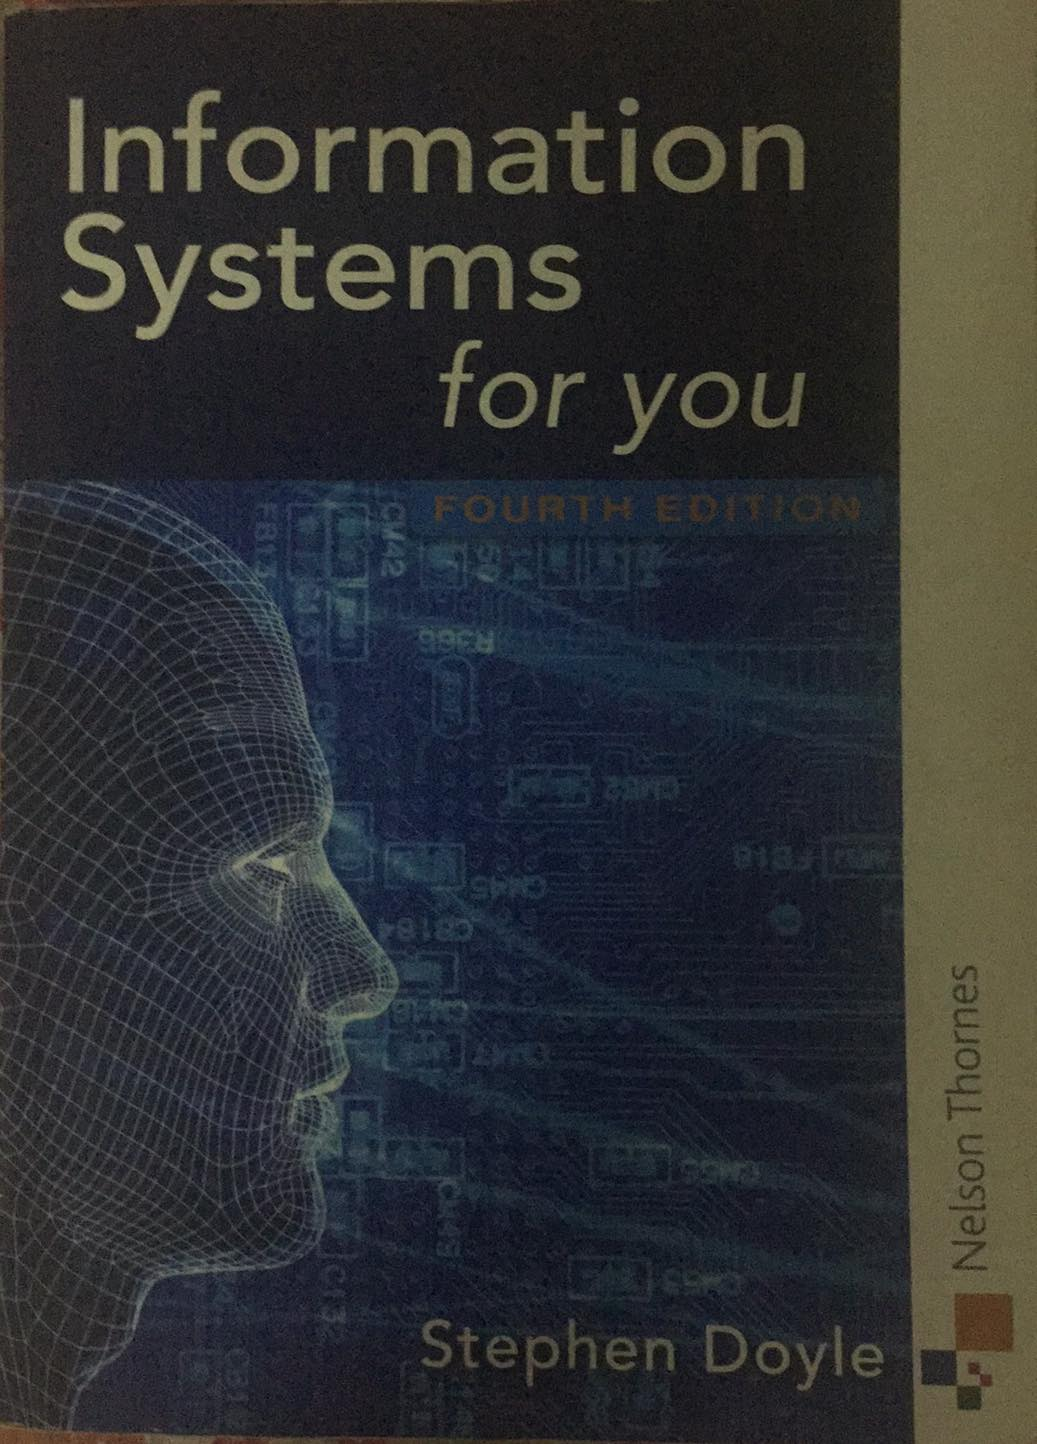 information systems for you (fourth edition)